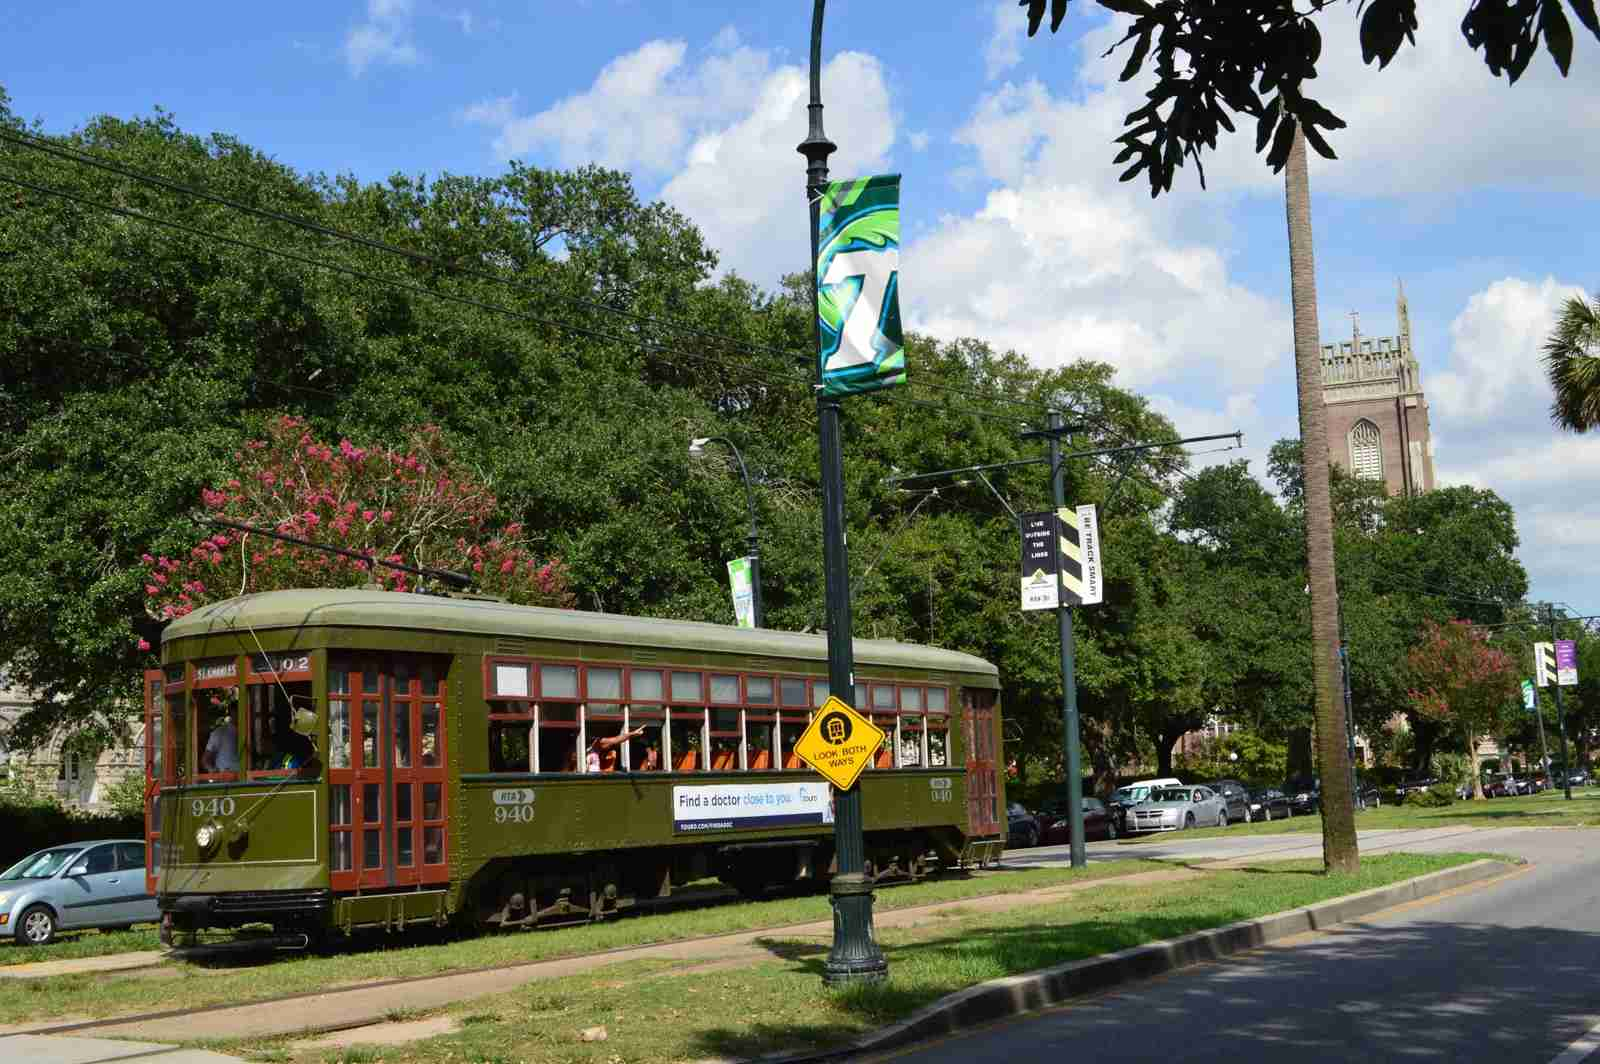 The St. Charles Avenue streetcar. (Photo by JWLouisiana/Getty Images)